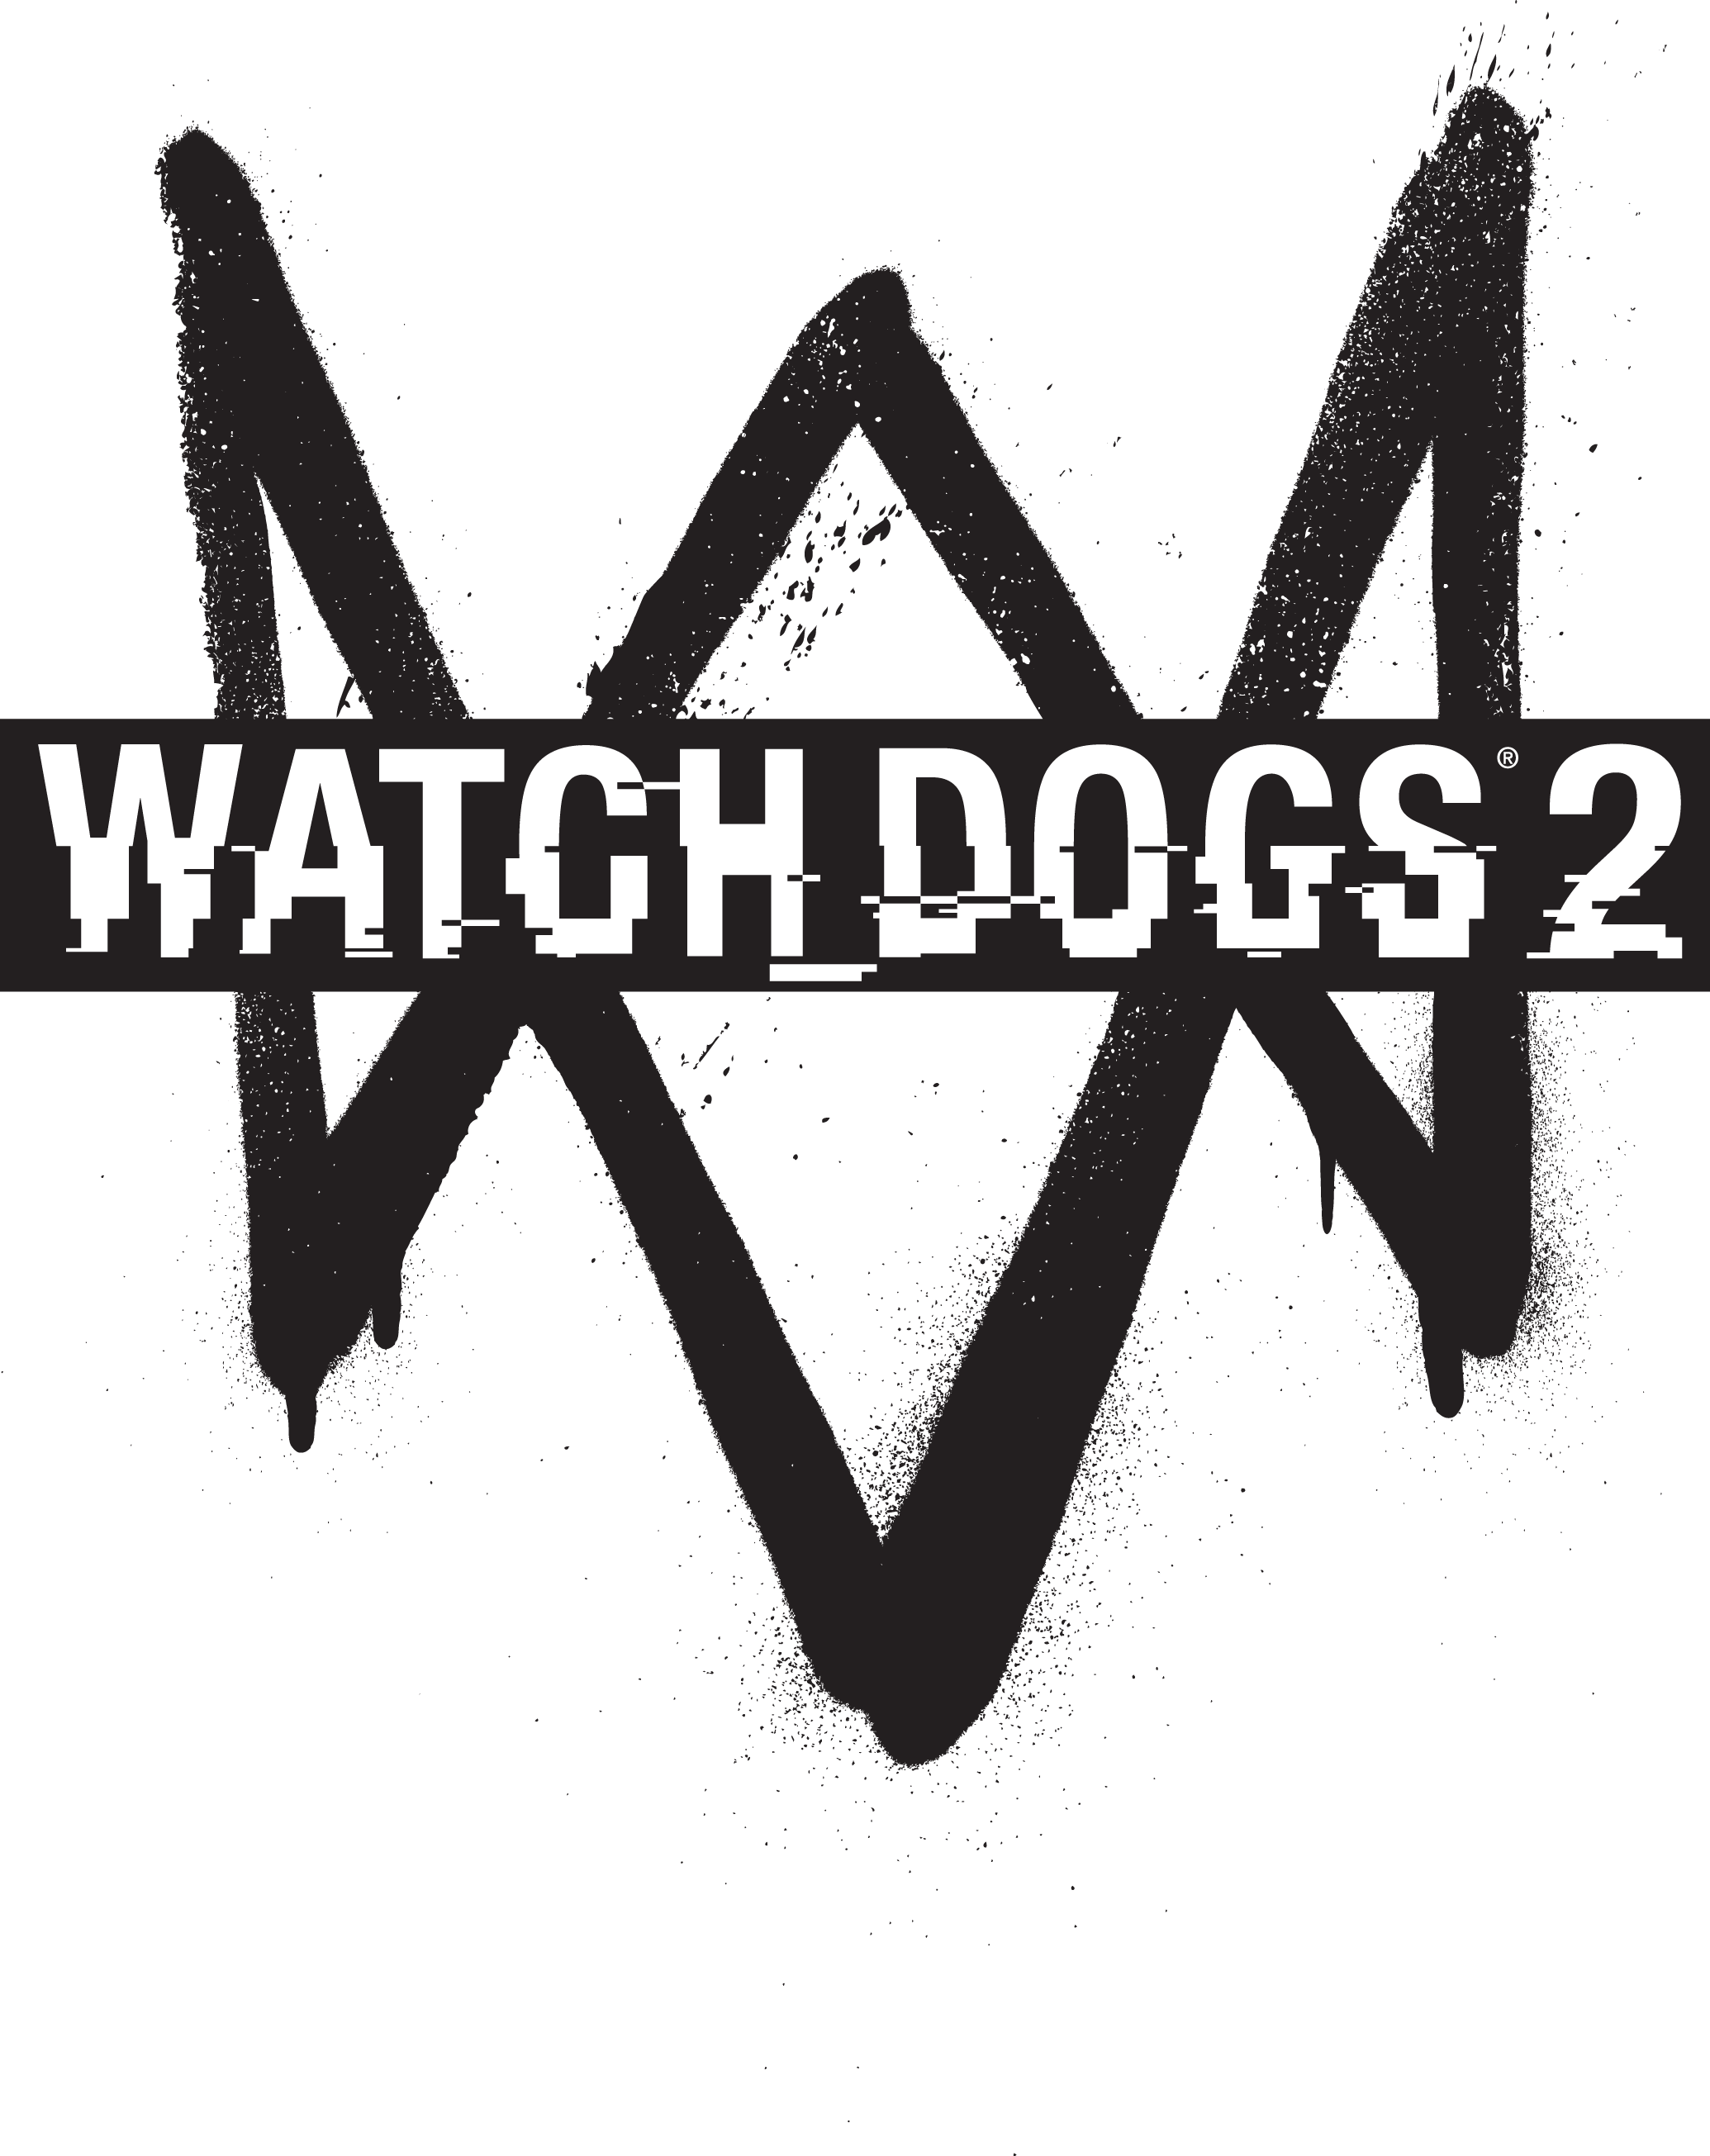 Free Watch Dogs Logo Transparent, Download Free Clip Art.